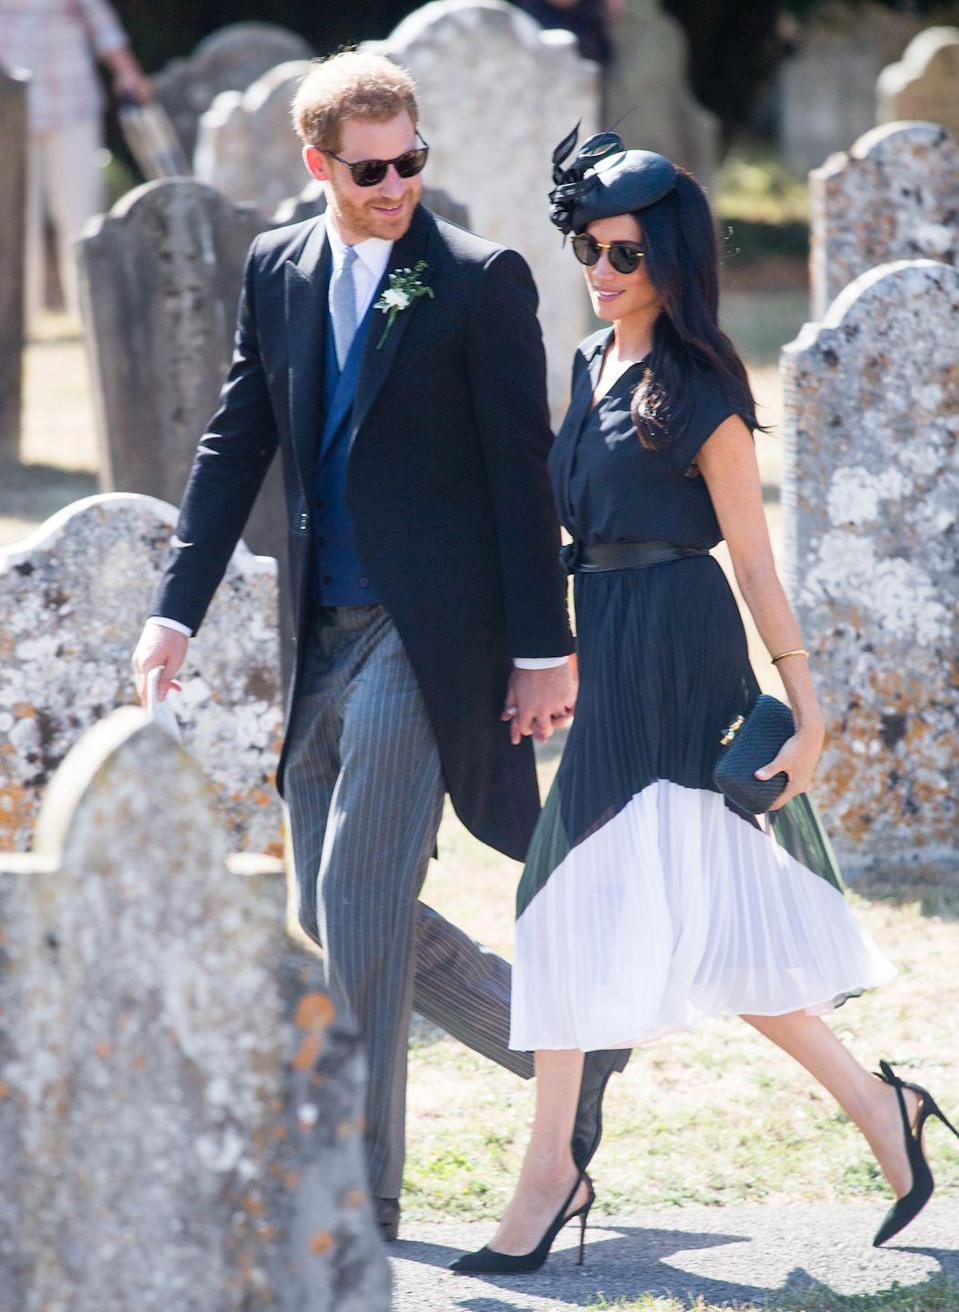 """<p>For their friends <a href=""""https://www.elle.com/uk/life-and-culture/a22648906/meghan-markle-prince-harry-charlie-van-straubenzee-wedding-black-dress/"""" rel=""""nofollow noopener"""" target=""""_blank"""" data-ylk=""""slk:Charlie and Daisy Van Straubenzee's wedding"""" class=""""link rapid-noclick-resp"""">Charlie and Daisy Van Straubenzee's wedding</a>, the newlyweds walked hand-in-hand wearing matching sunglasses, August 2018. </p>"""